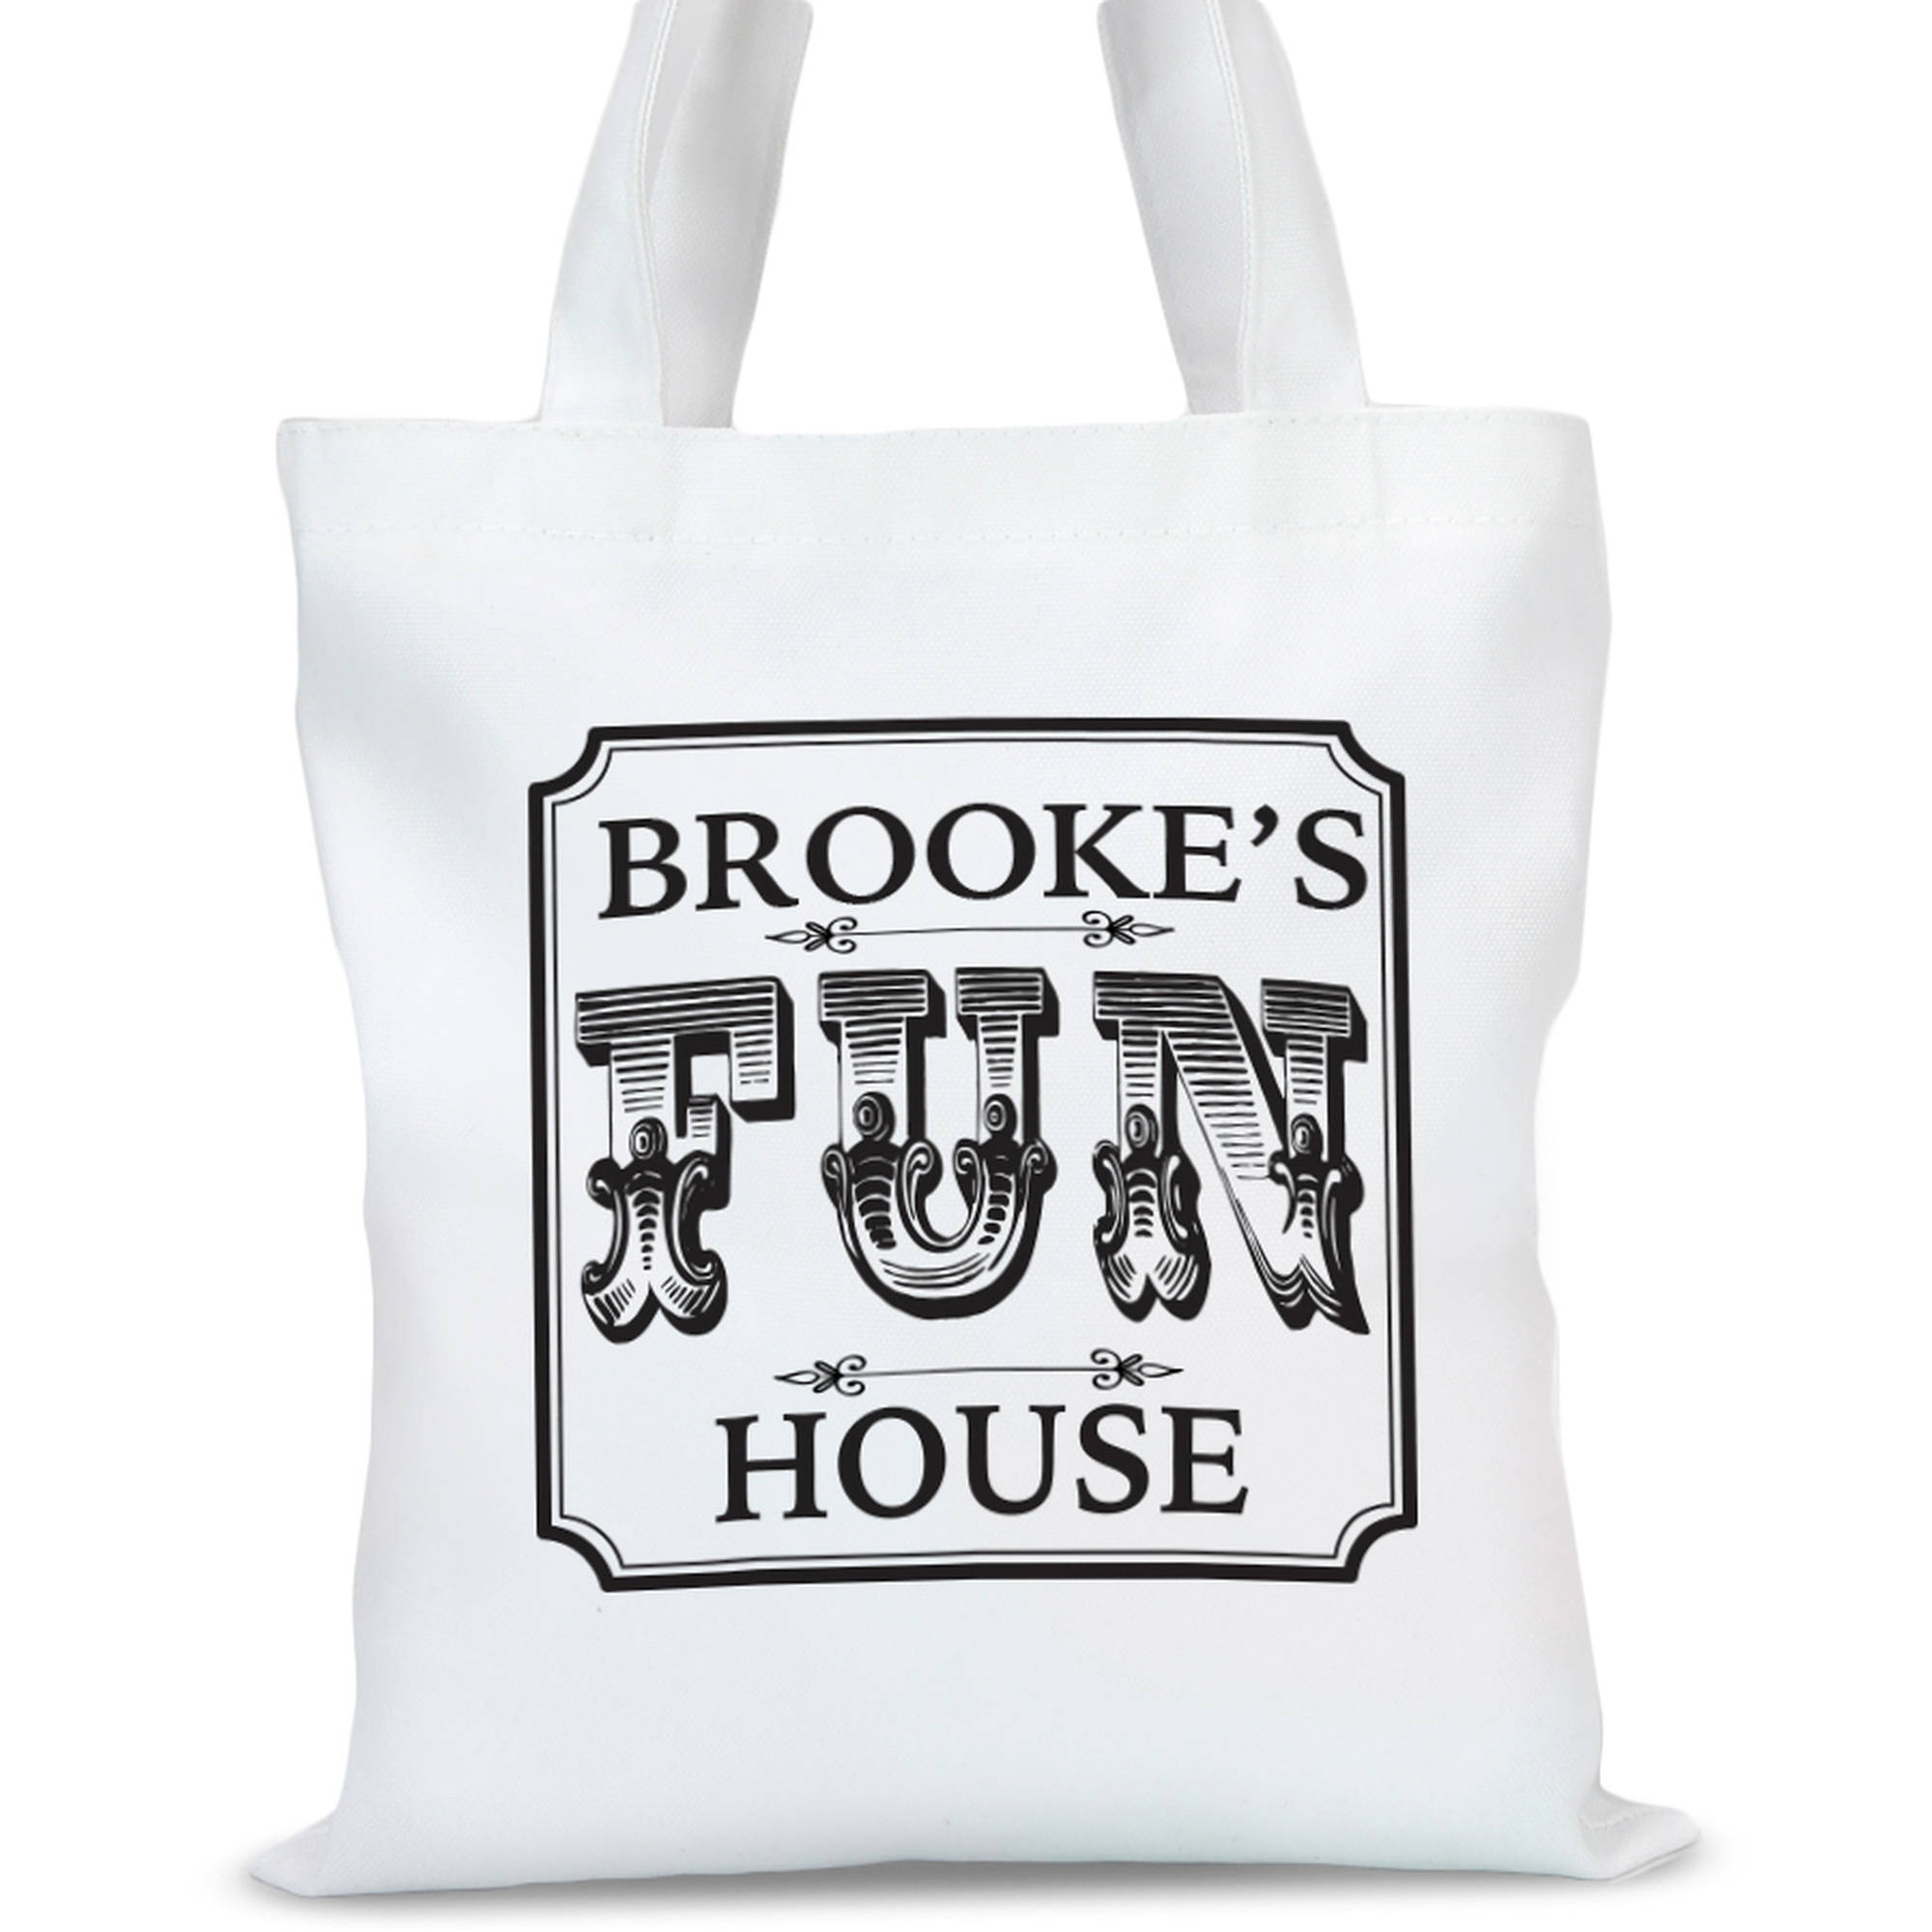 "Personalized Fun House Tote Bag, Sizes 11"" x 11.75"" and 15"" x 16.25"""